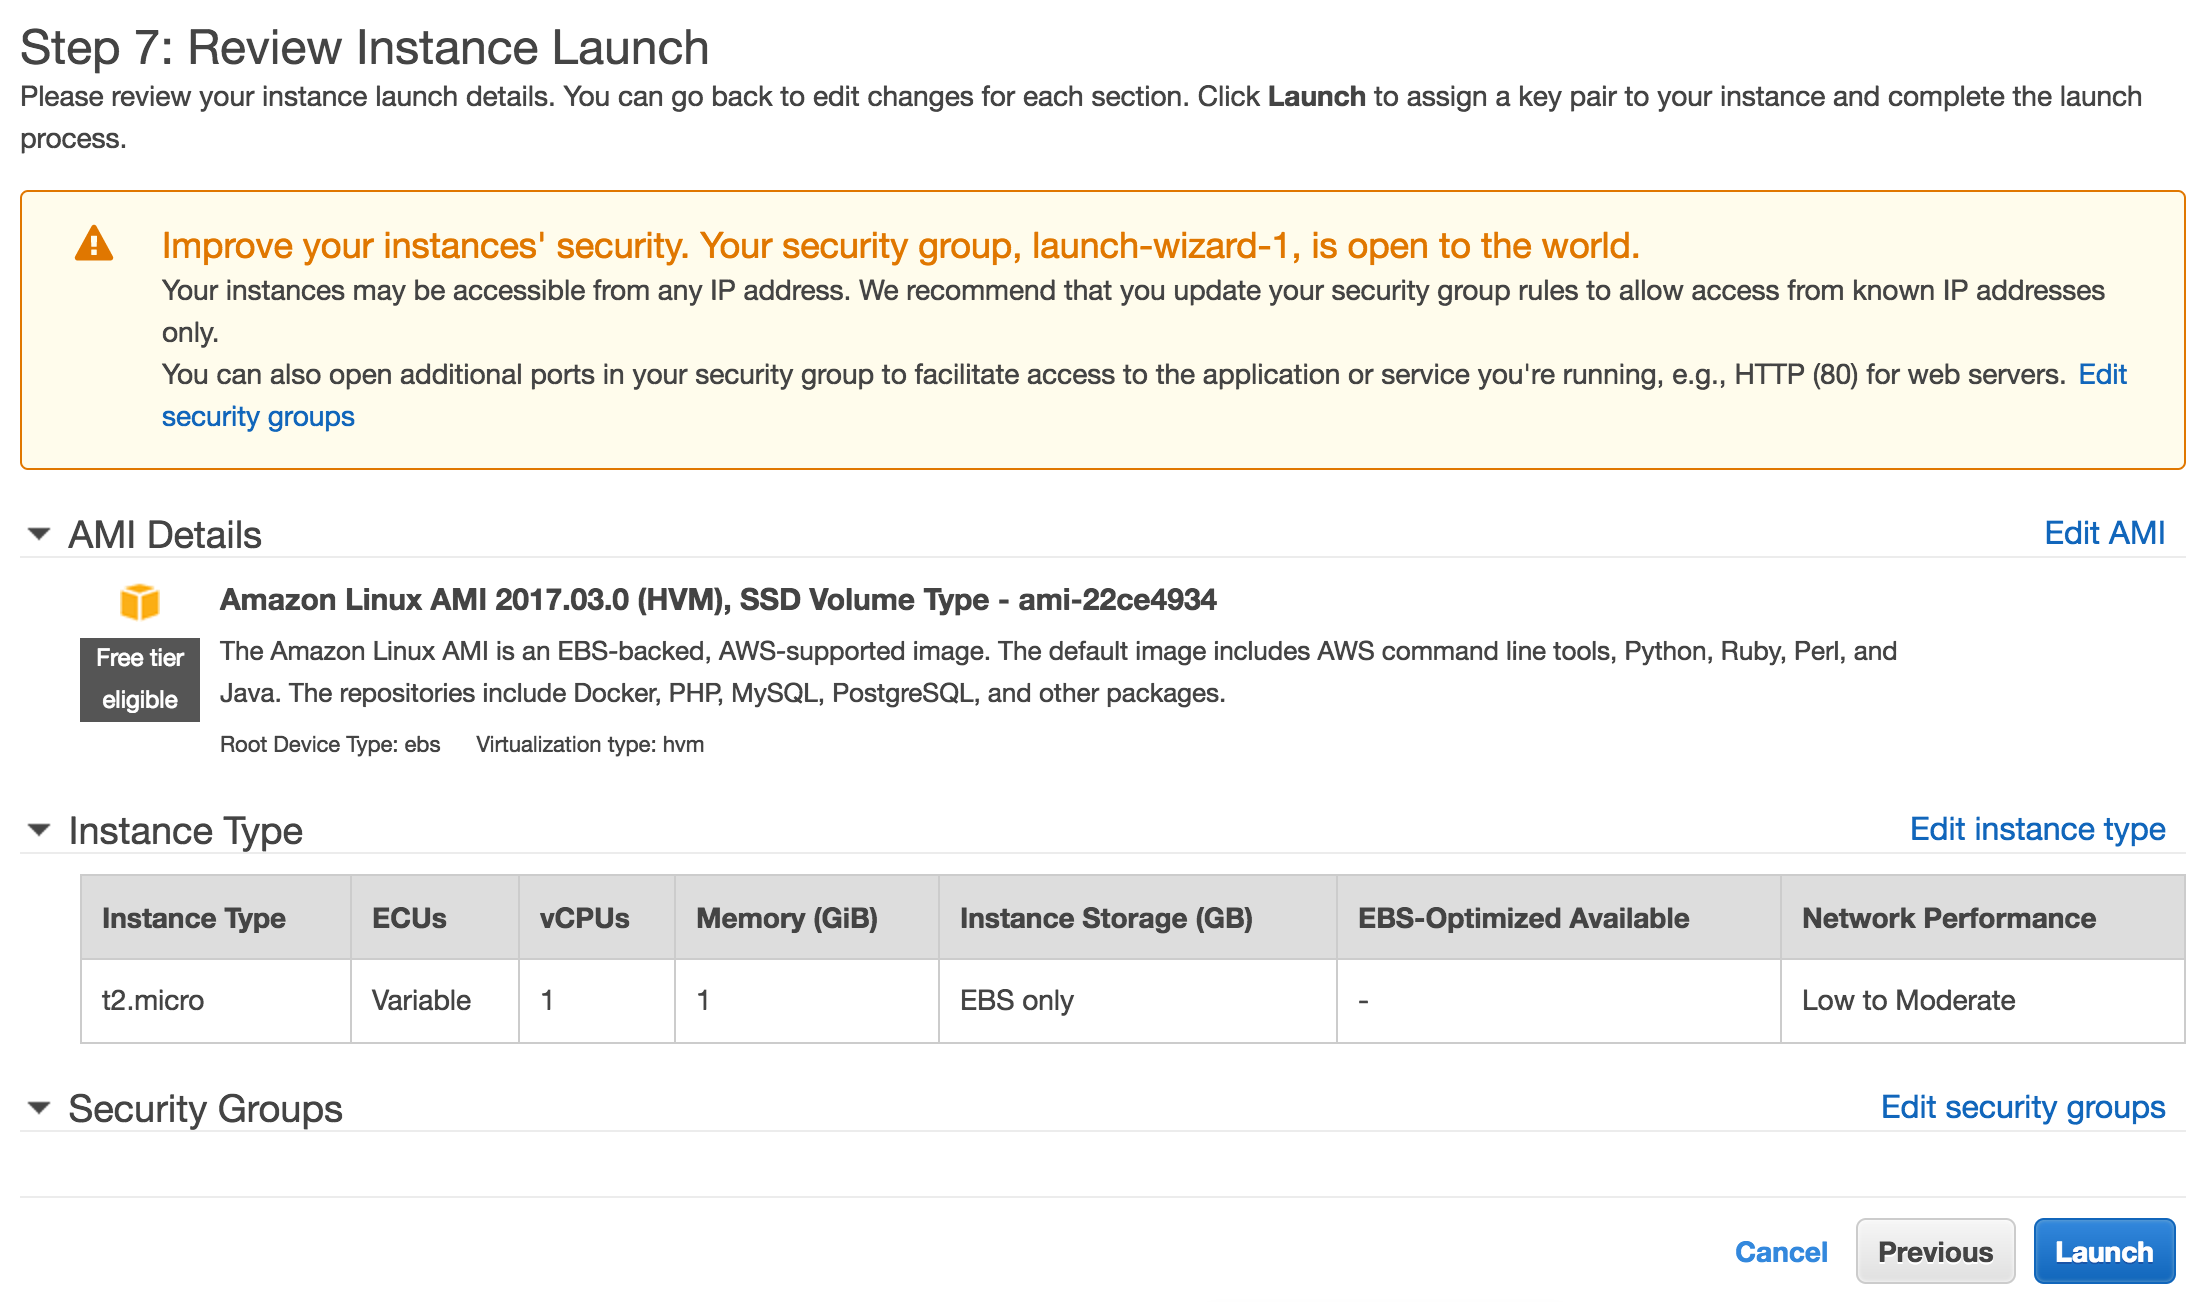 Review your instance launch